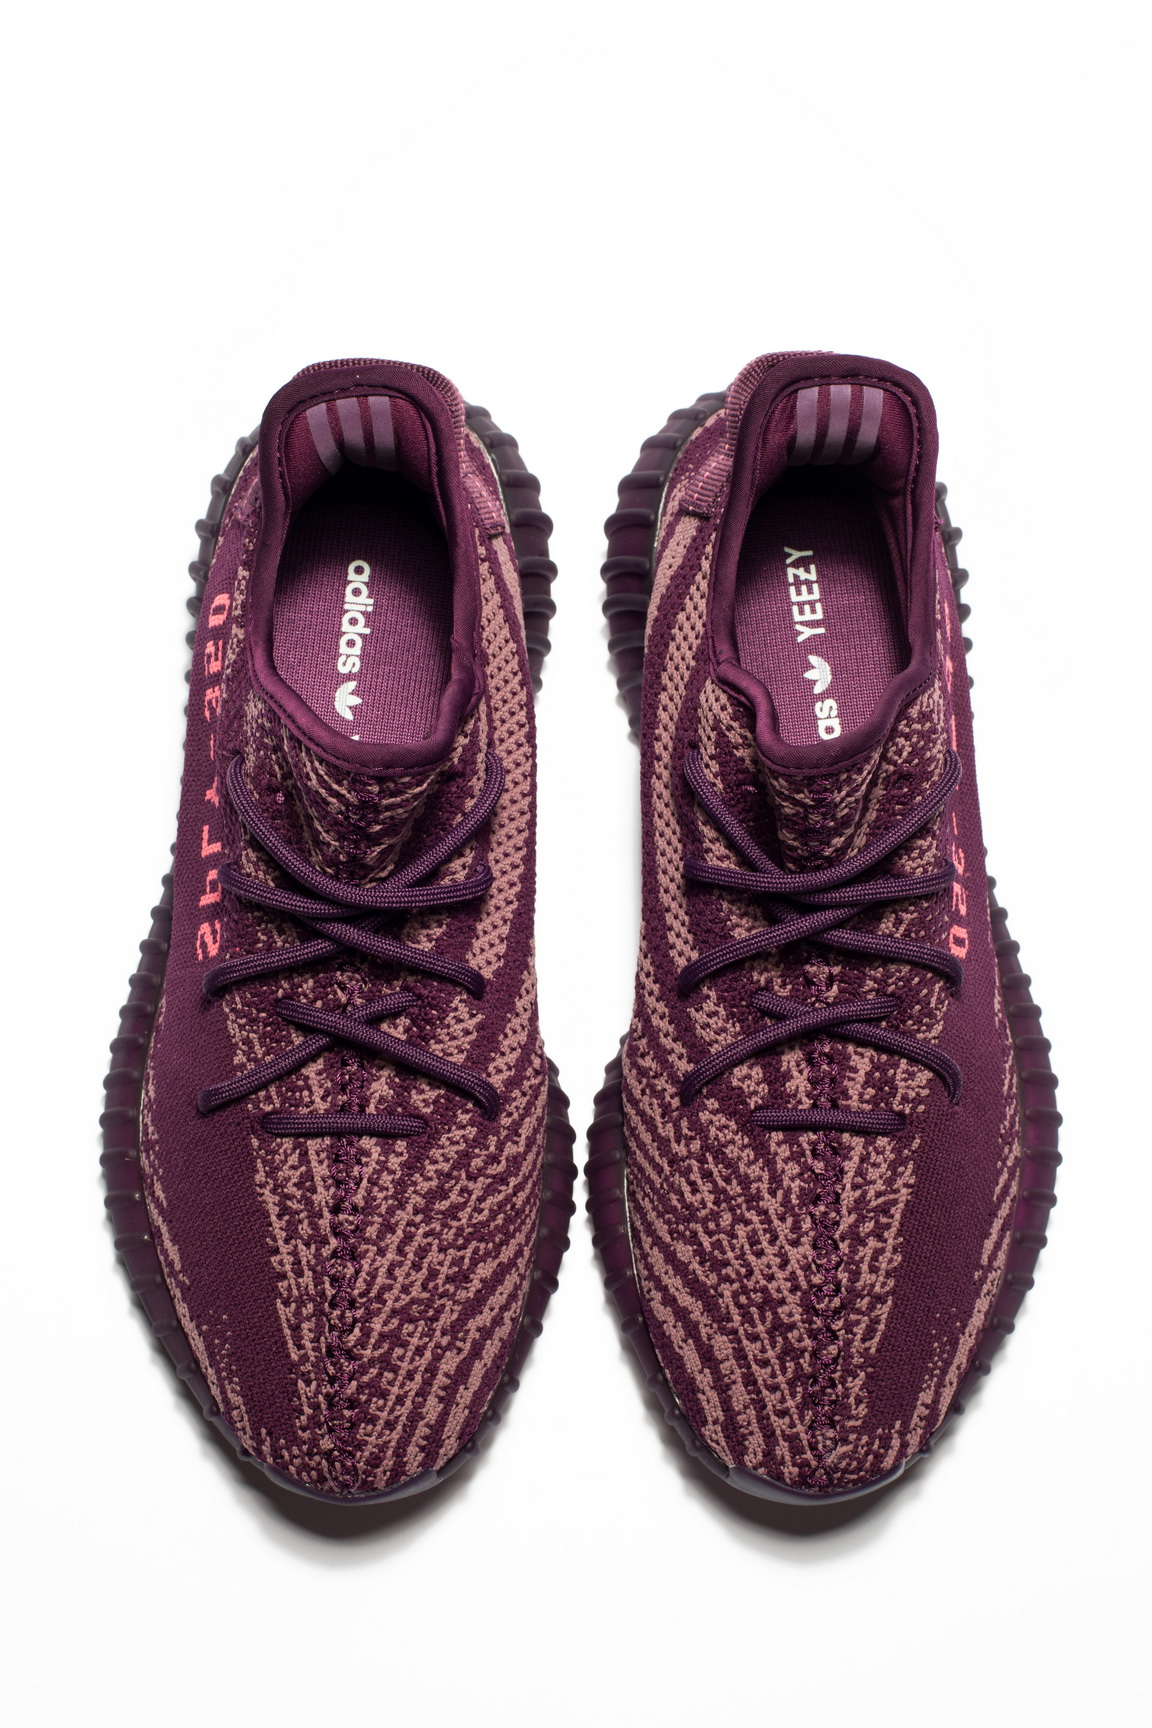 YEEZY BOOST 350 V2 'Red Night' B37573